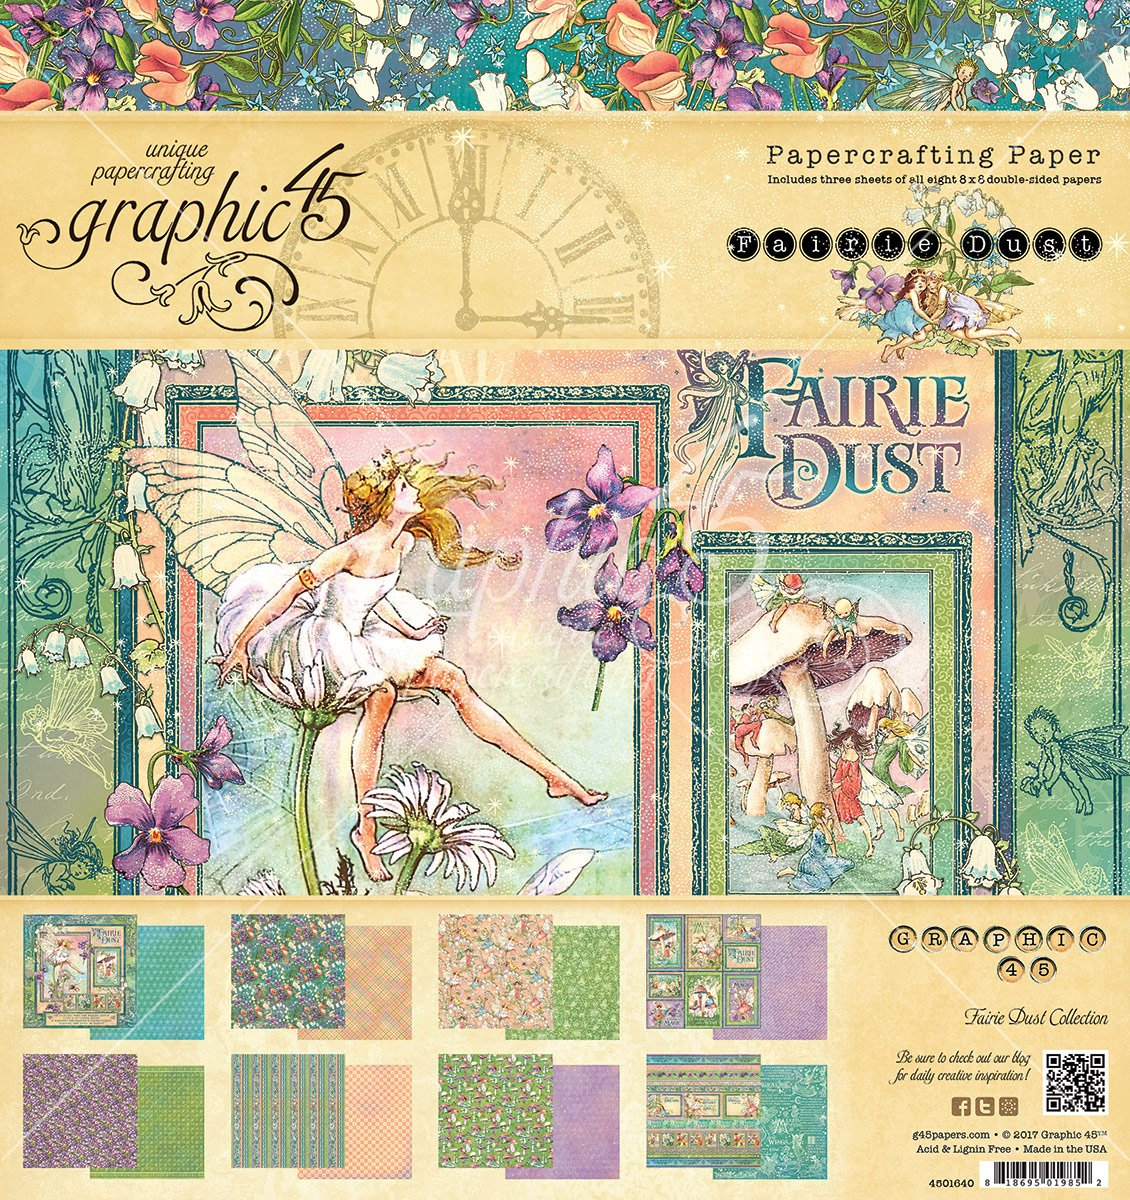 Graphic 45 Fairie Dust cuscino 20,3 x 20,3 cm, carta,, 21.6 x 20.4 x 0.6 cm 4501640